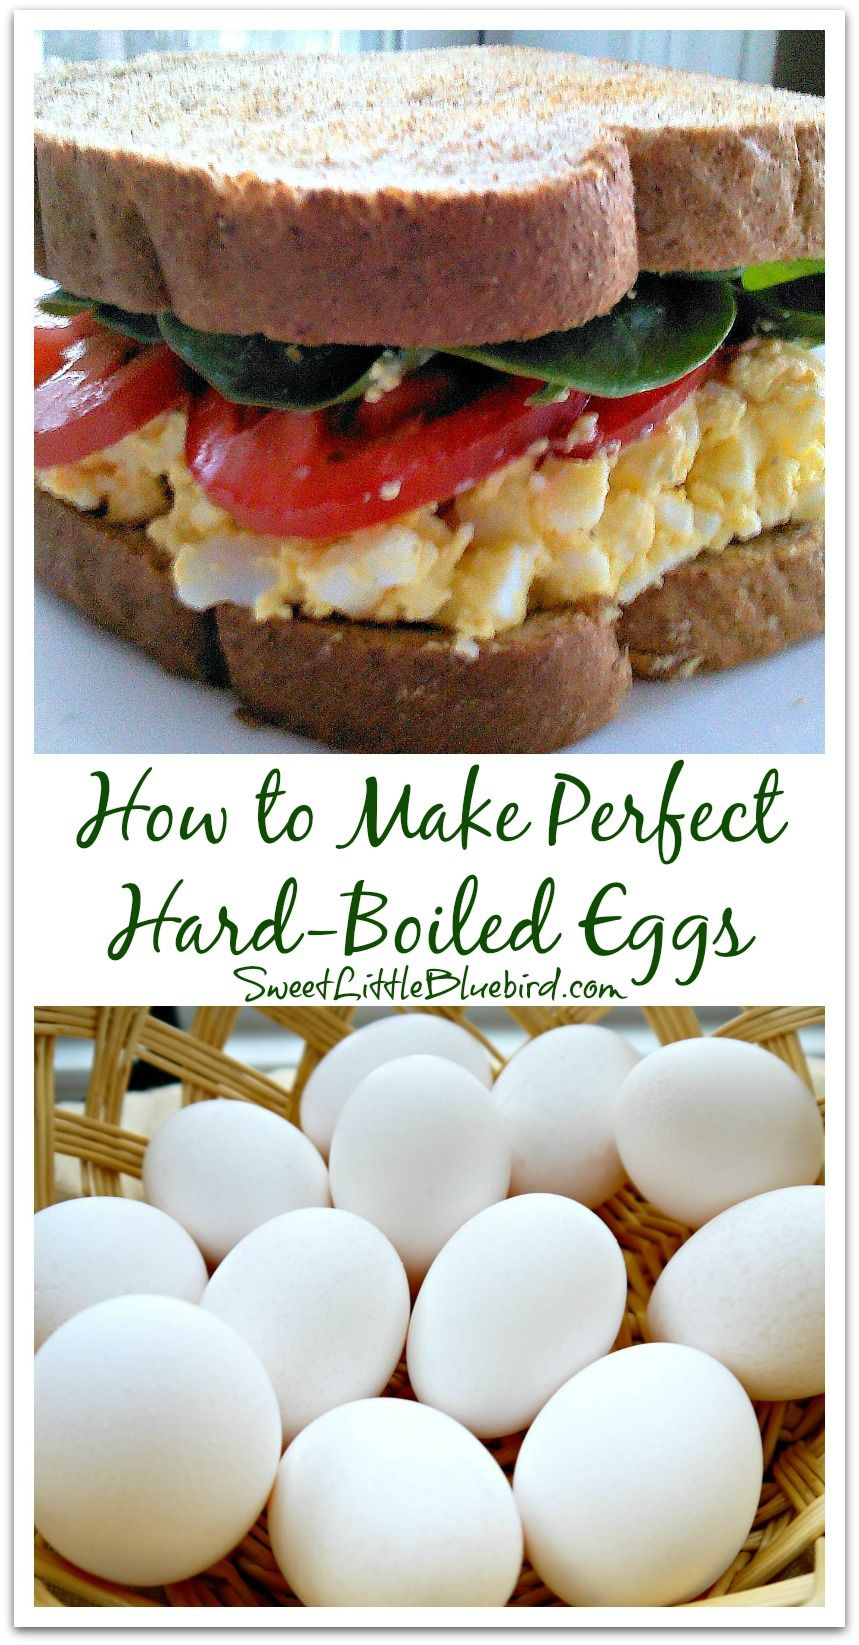 How to Make Perfect Hard-Boiled Eggs - Egg salad recipes included! {Classic Egg Salad & Avocado Egg Salad with Cilantro Lemon-Lime Mayo}    | SweetLittleBluebird.com